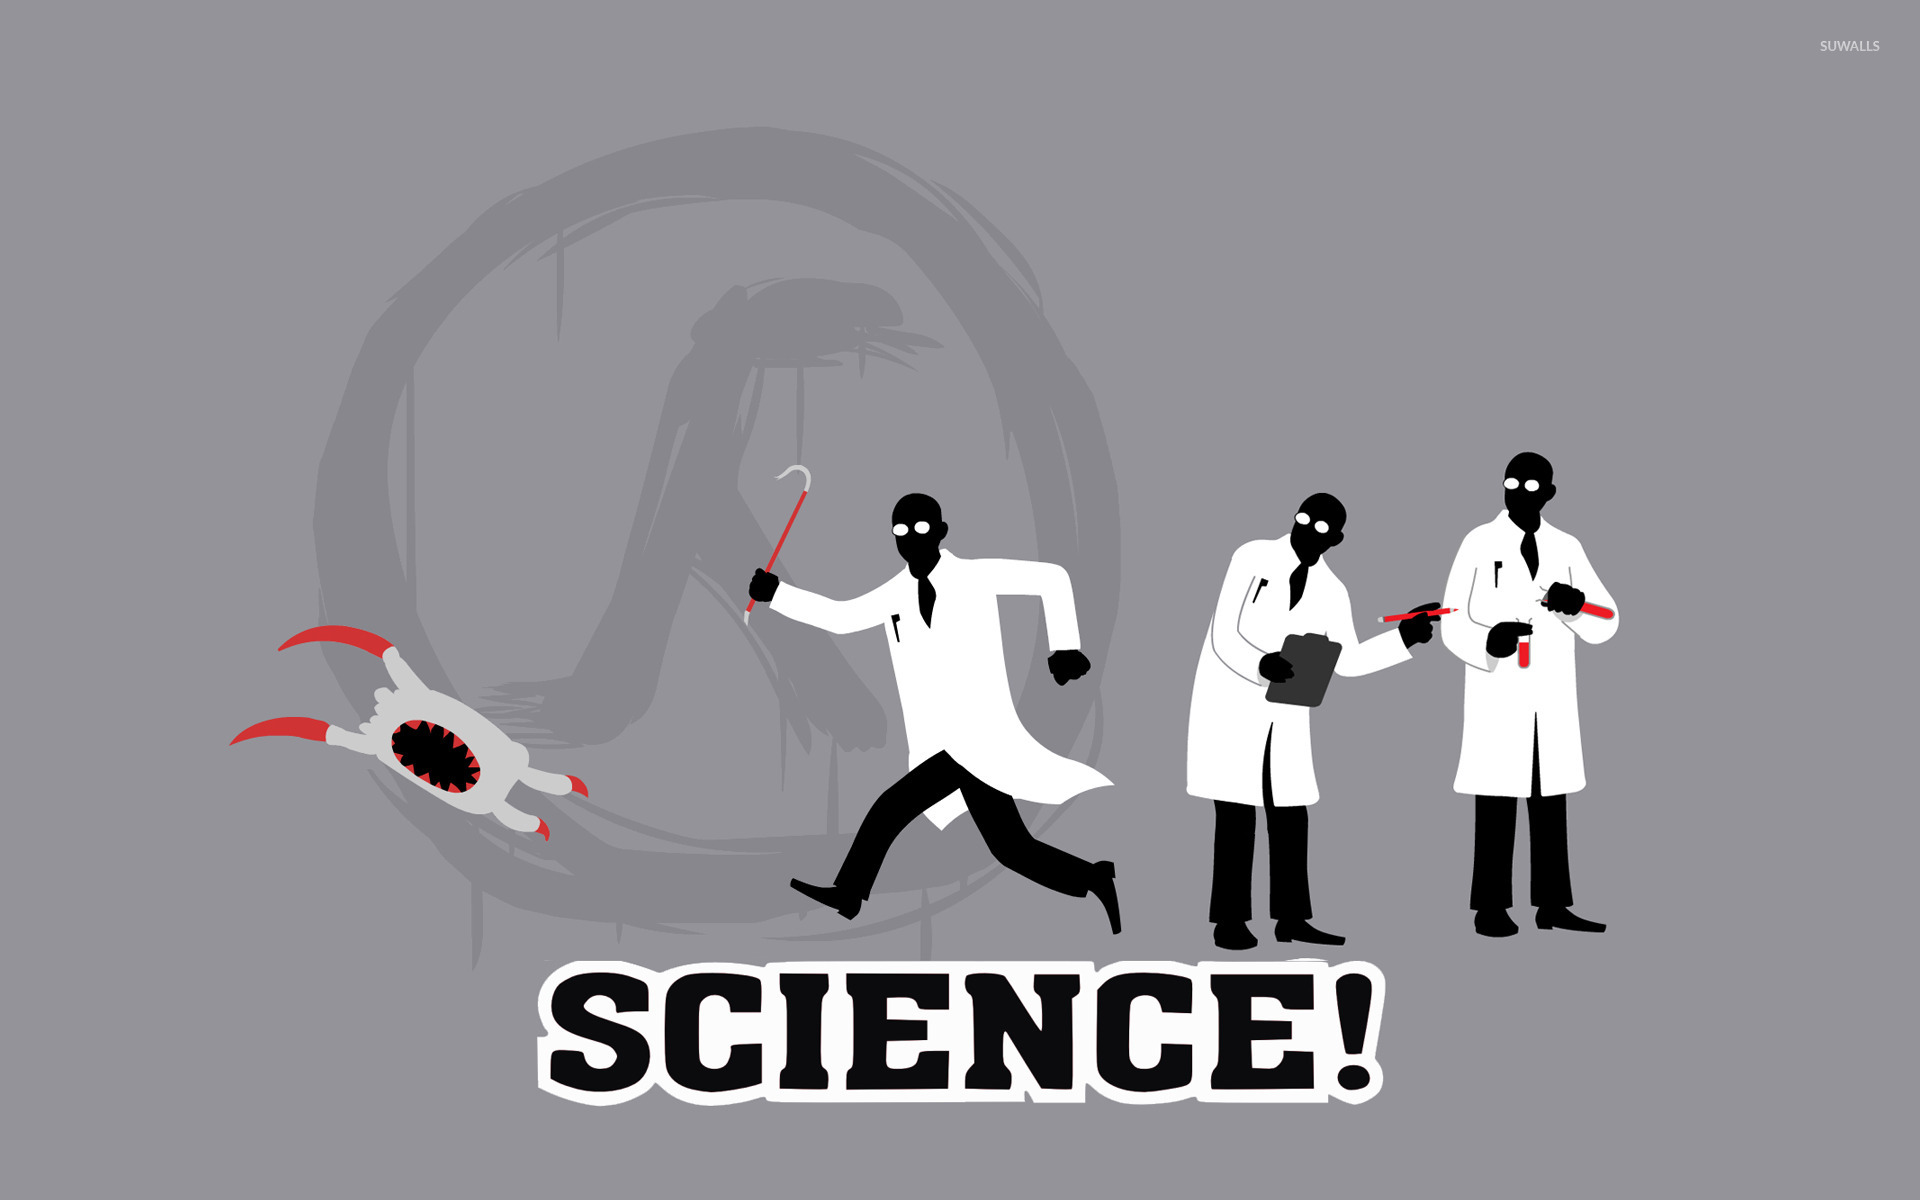 Funny Science Wallpapers